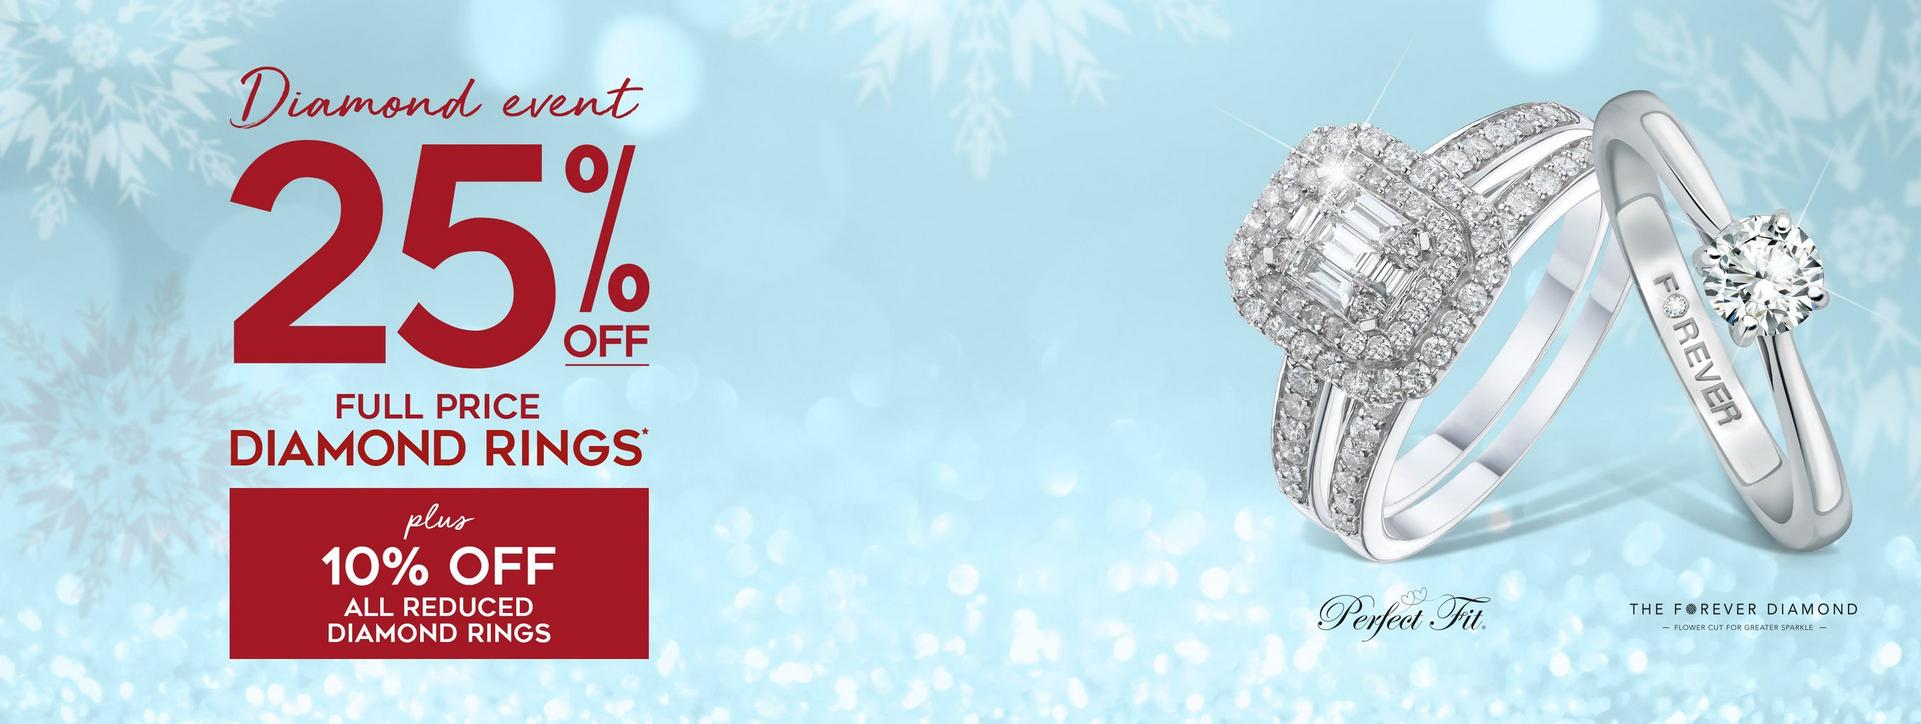 25% Off Full Price Diamond Rings - 10% Off Sale Diamond Rings - Shop Now